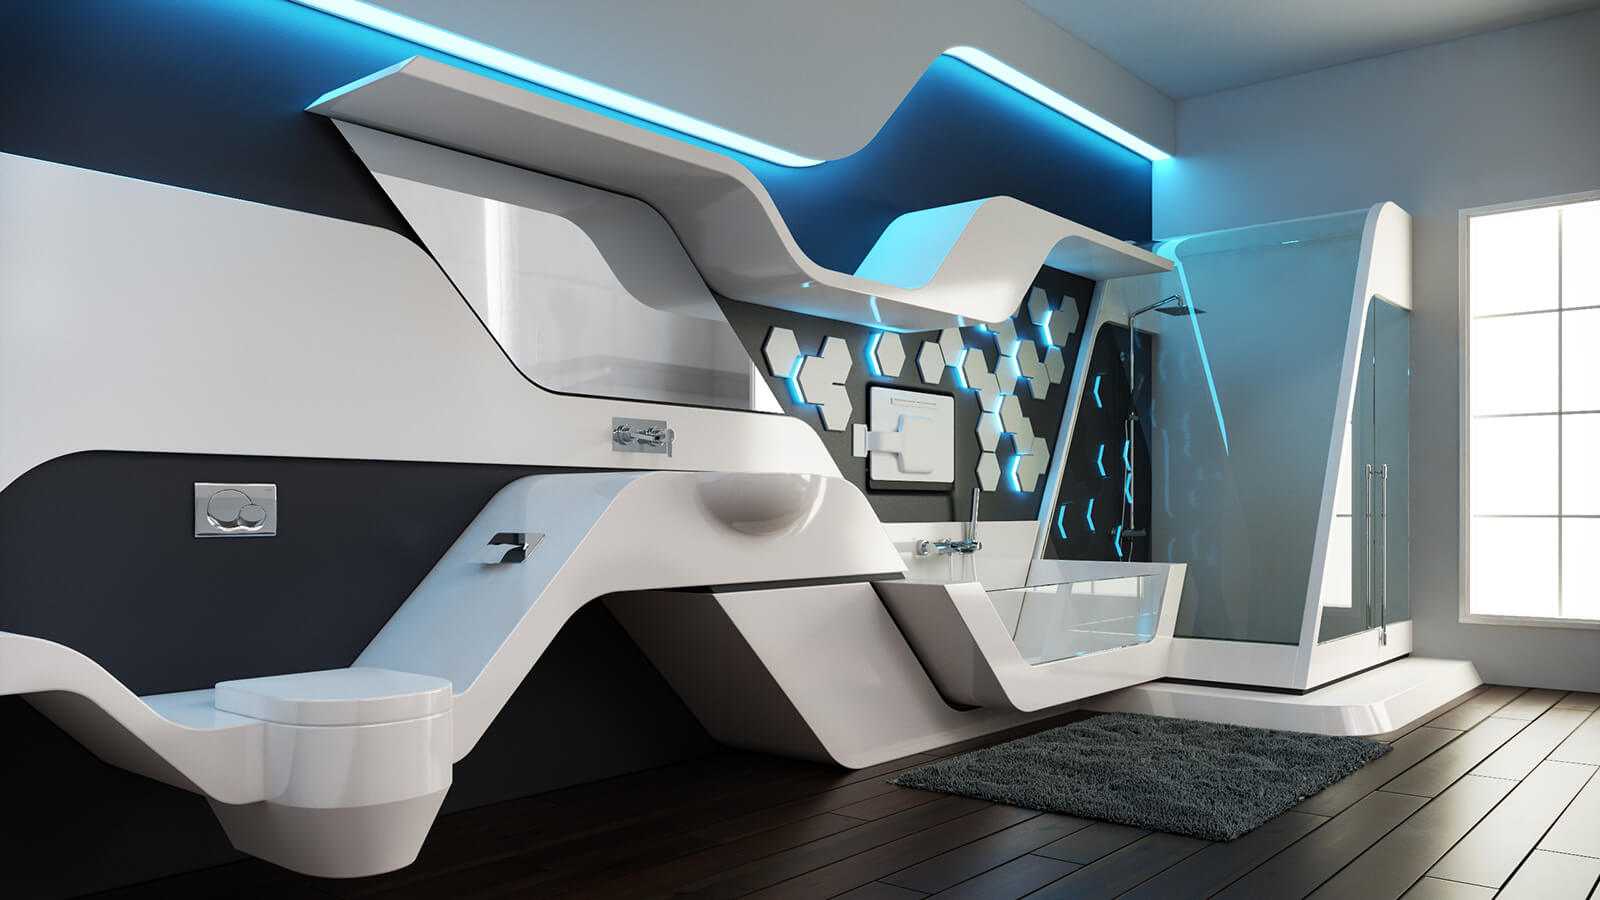 Futuristic bathroom | Source: bathandpamper.com